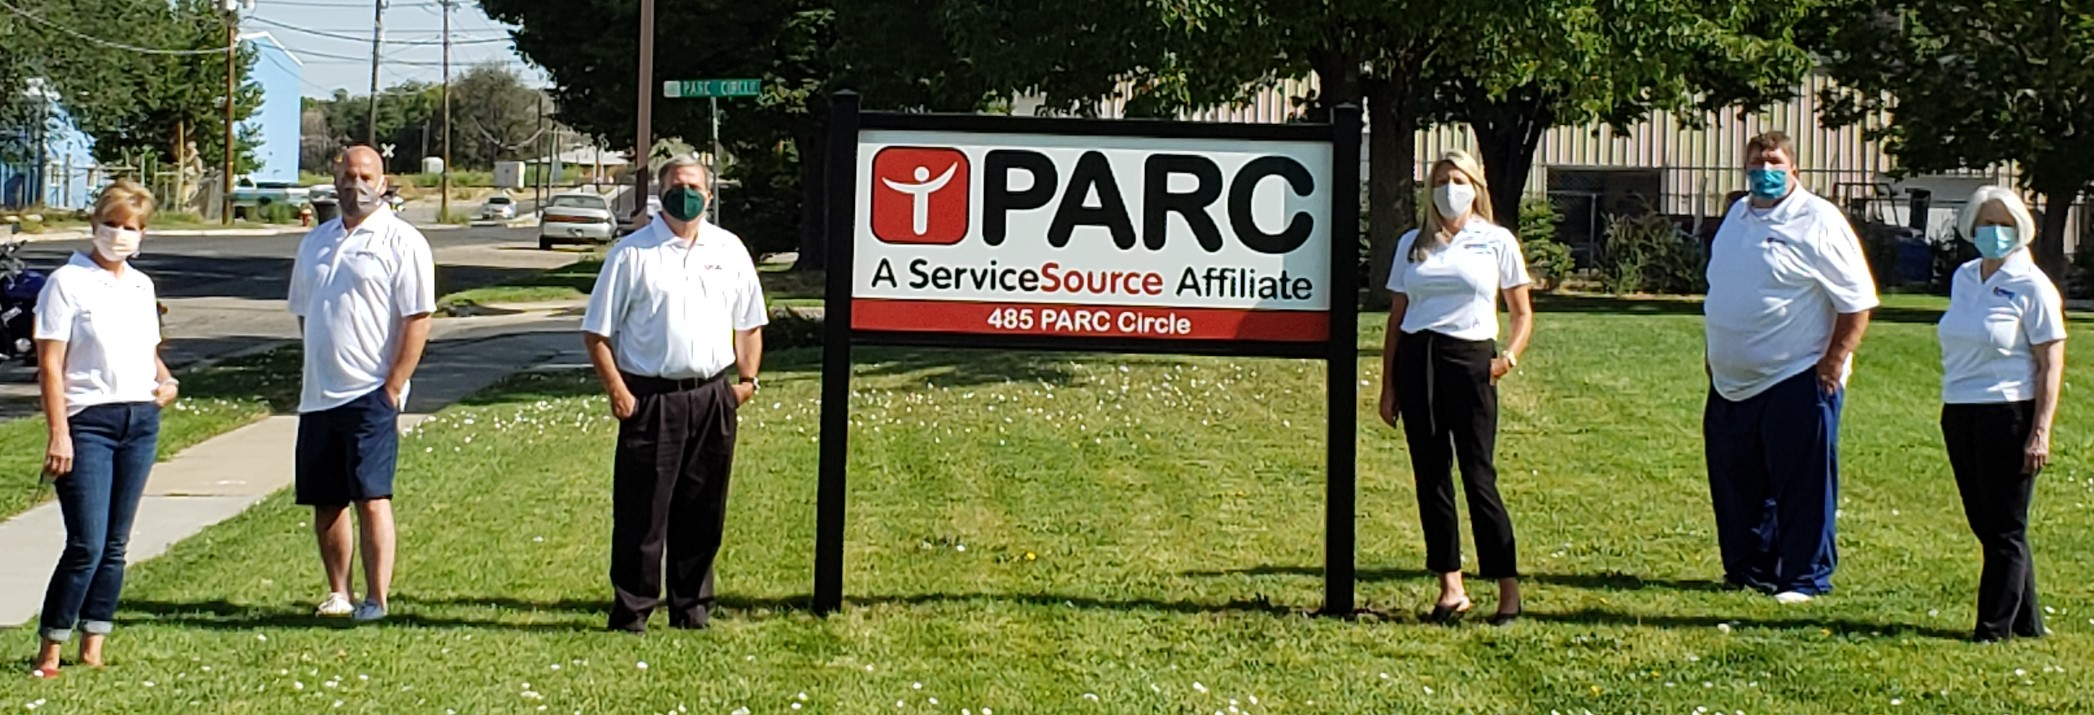 Group of people standing outside in front of sign that says PARC ServiceSource affiliate